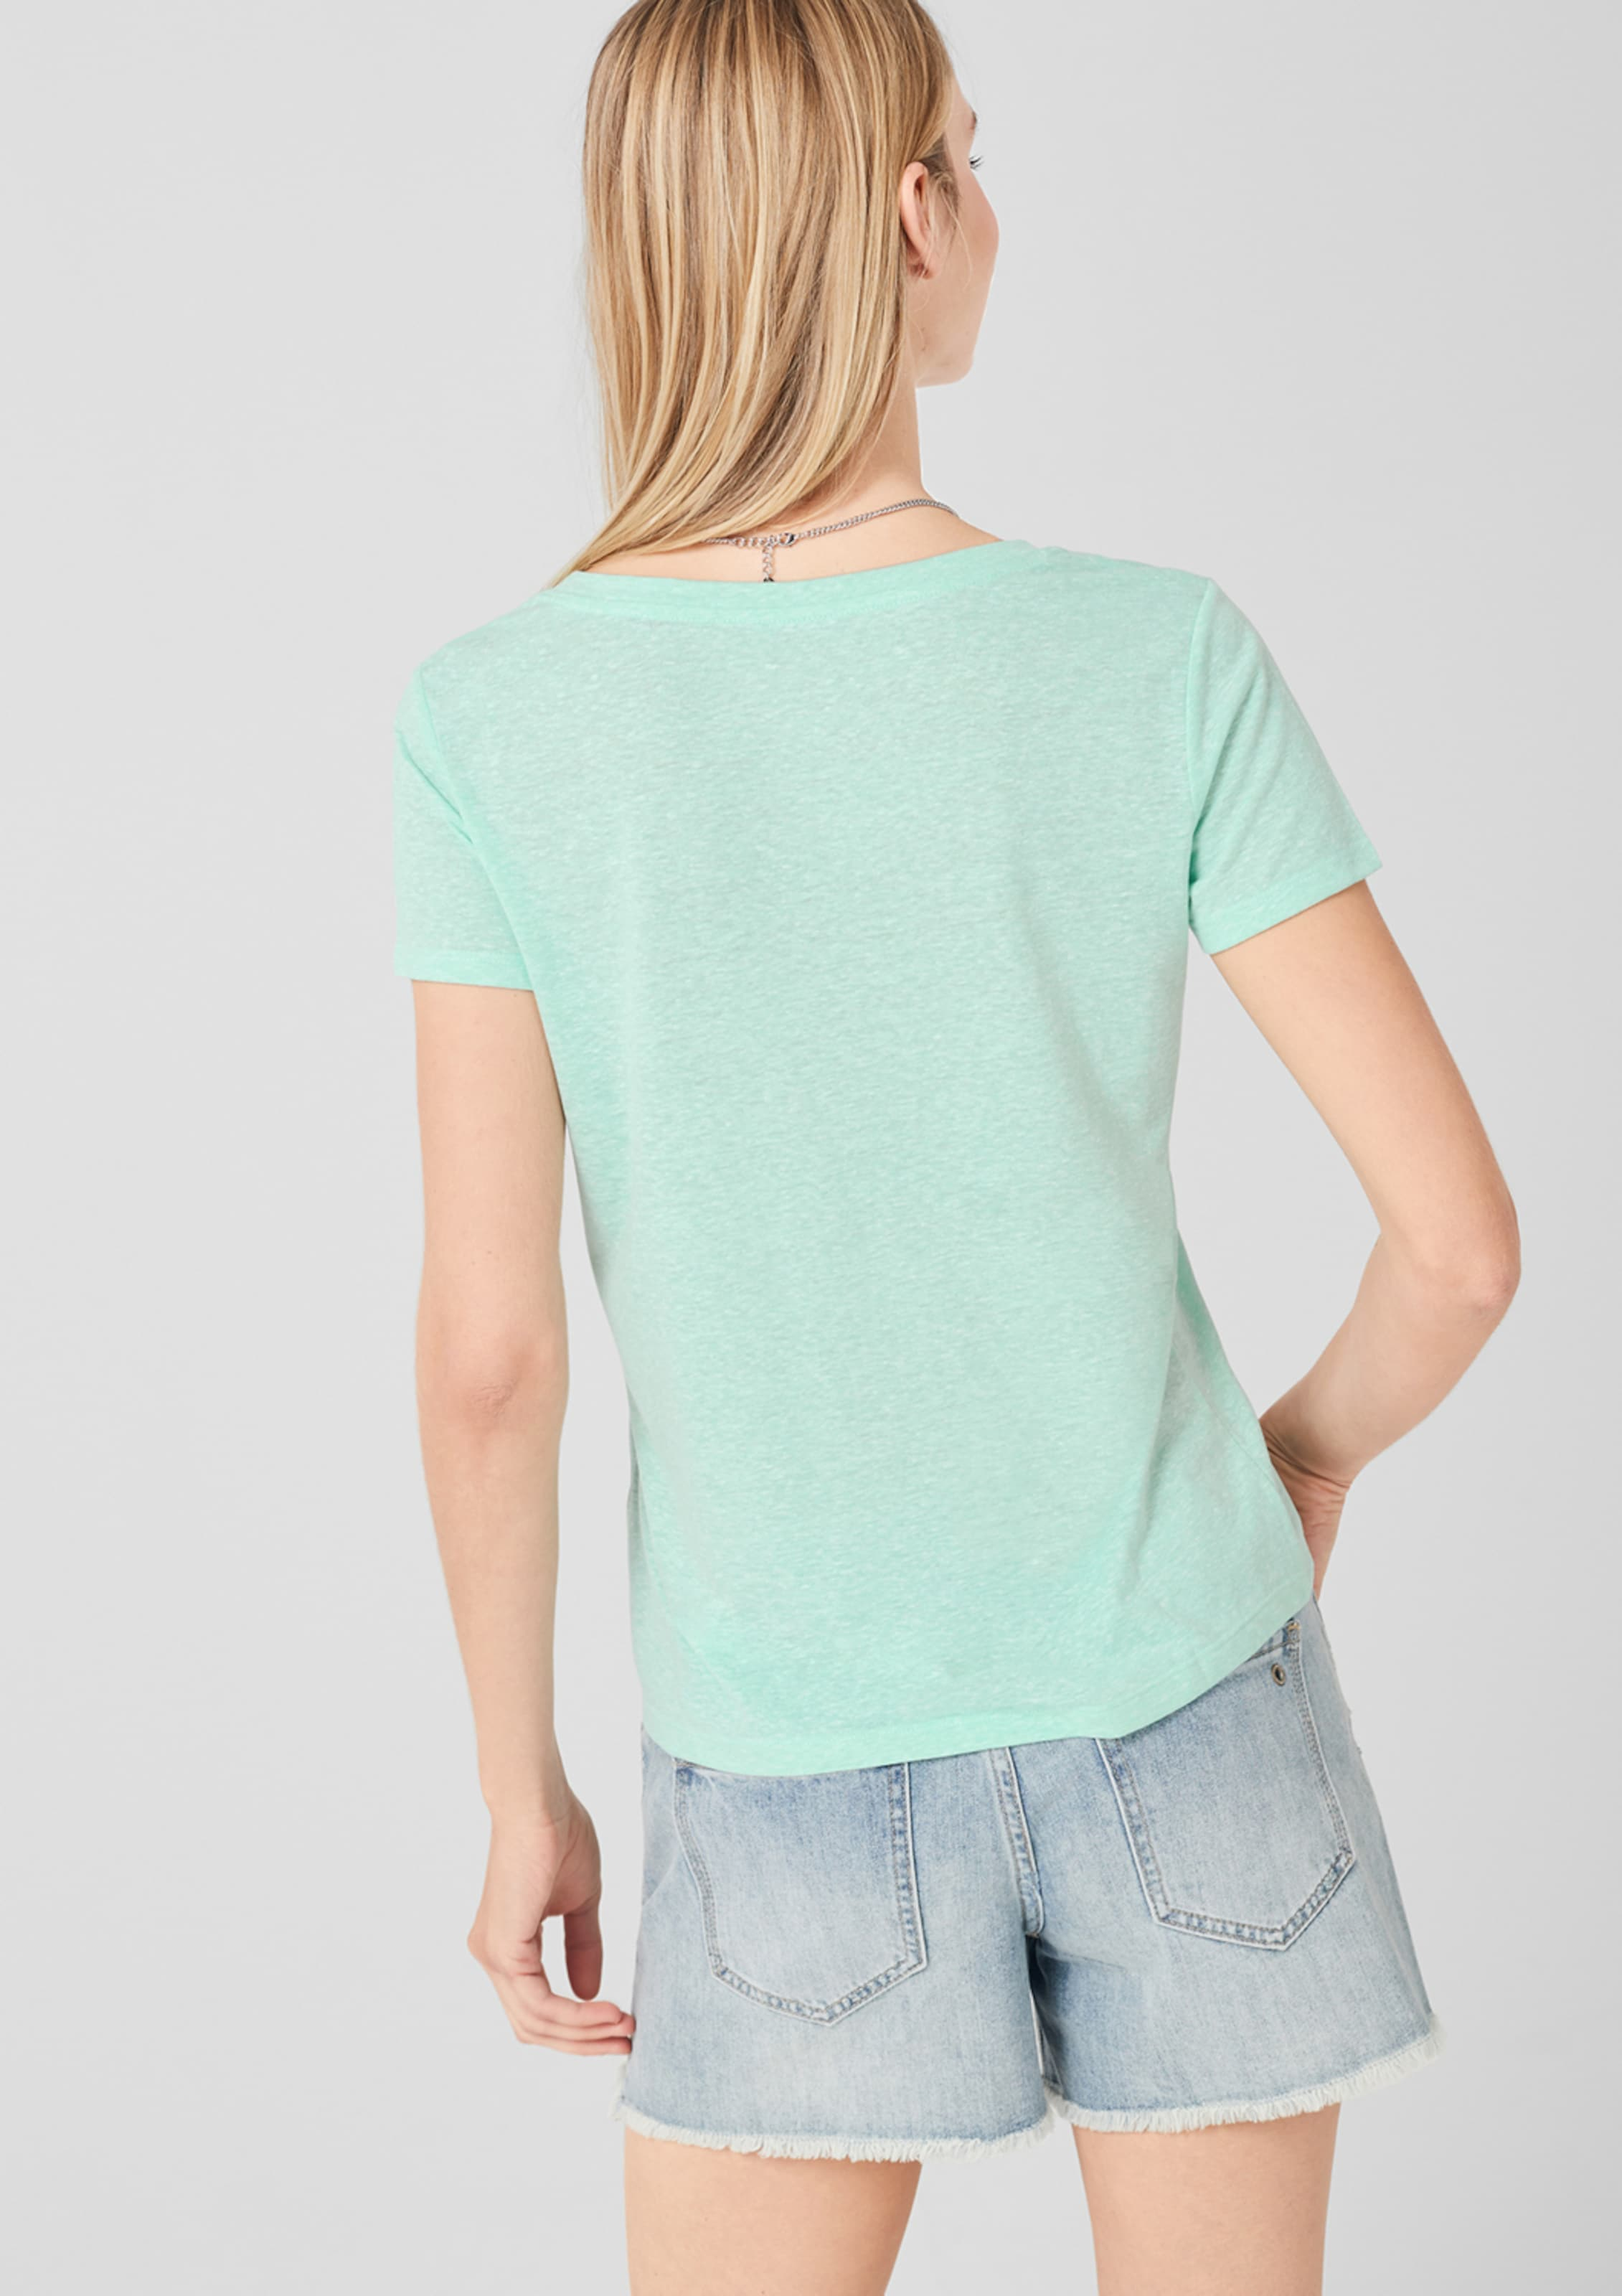 S oliver Shirt In Shirt oliver Mint S S Mint In Ok8X0wnZNP